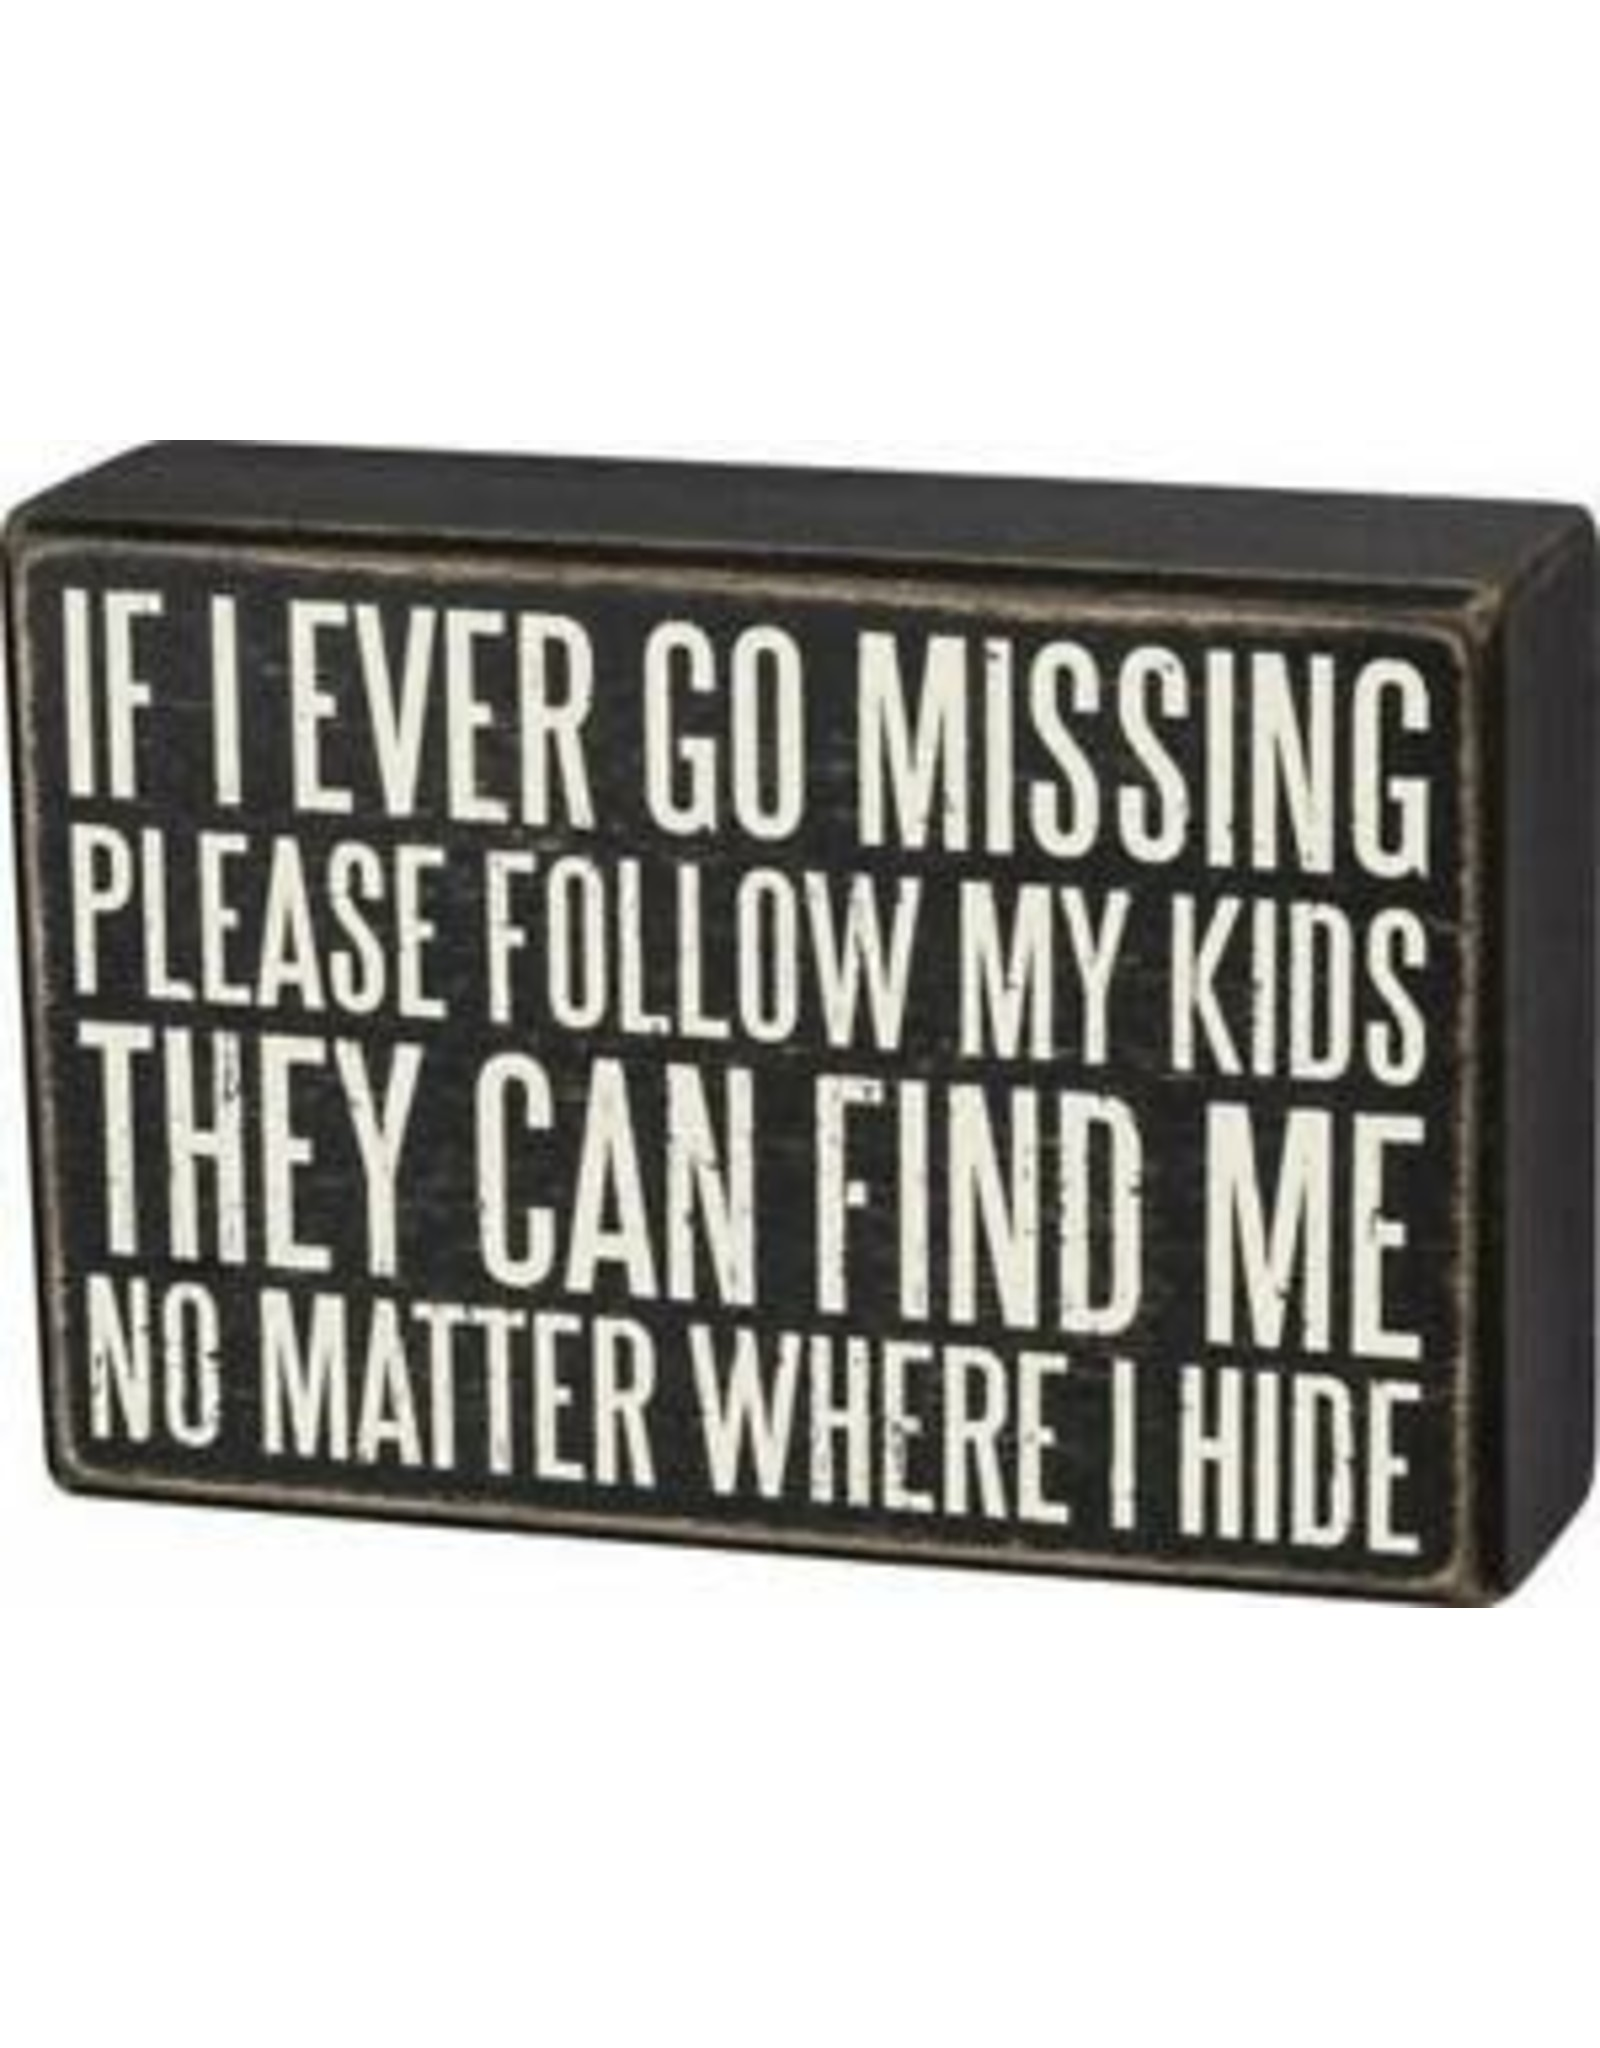 PRIMITIVES BY KATHY ATTITUDE BLOCK SIGNS KIDS WILL FIND ME